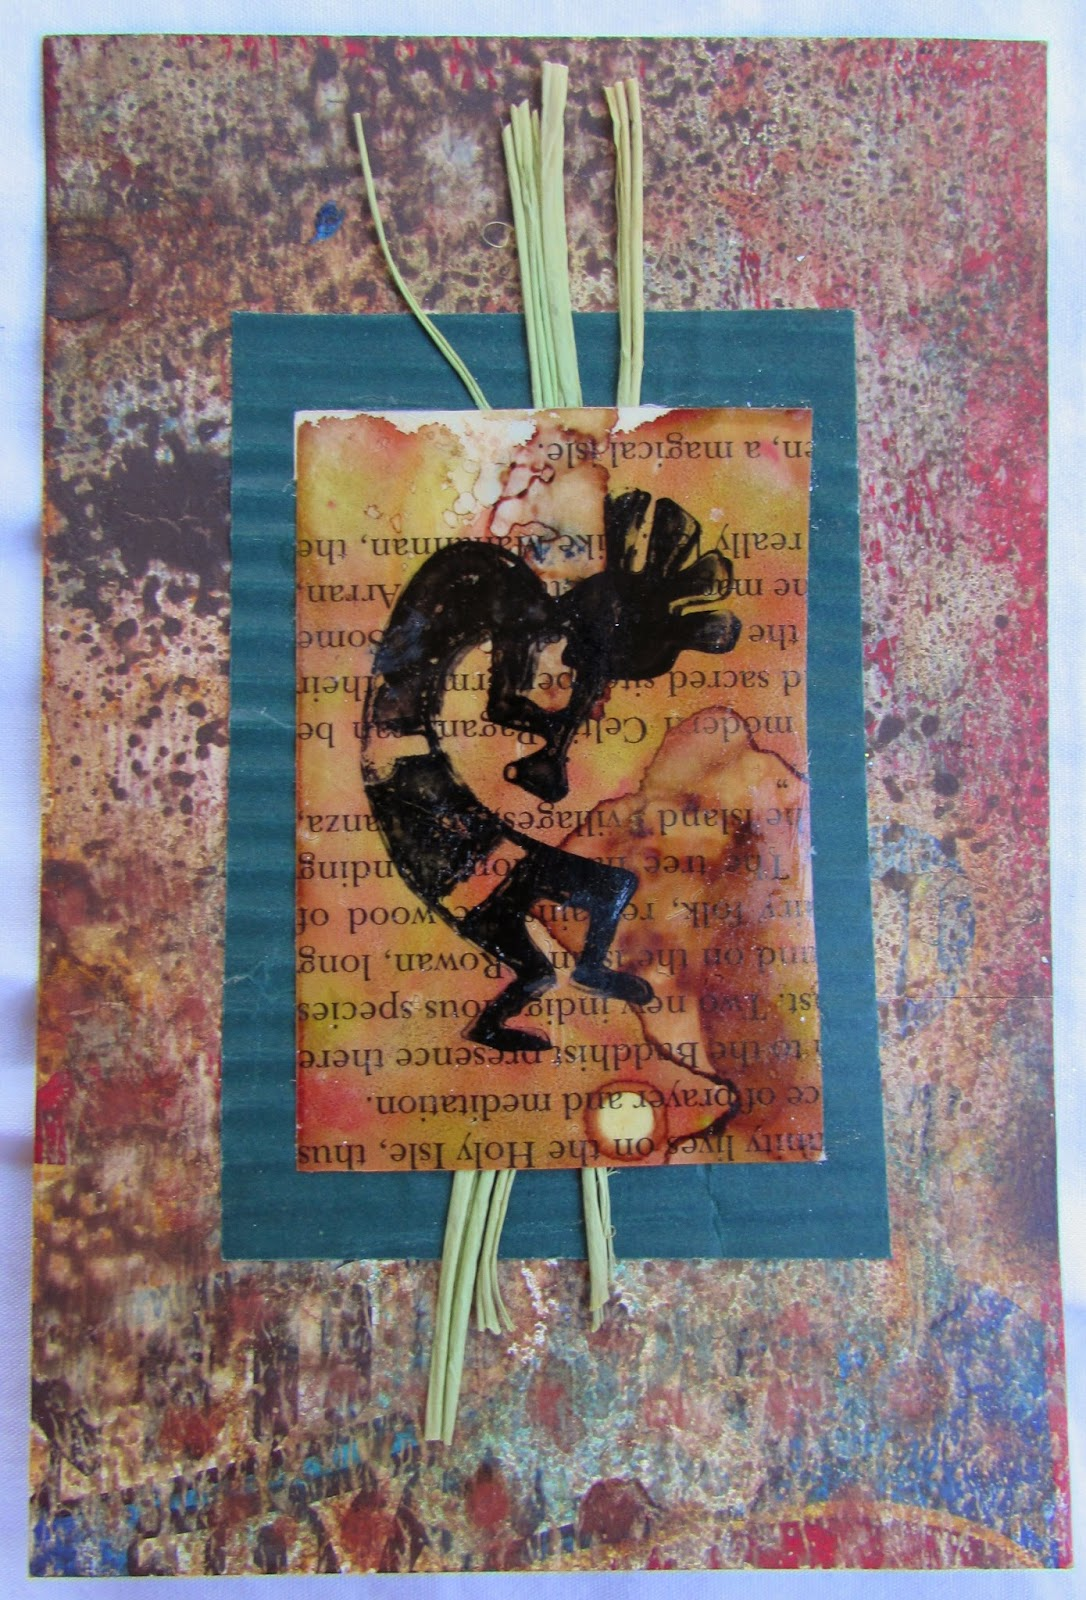 https://www.zibbet.com/enveloped-in-art/kokopelli-postcard